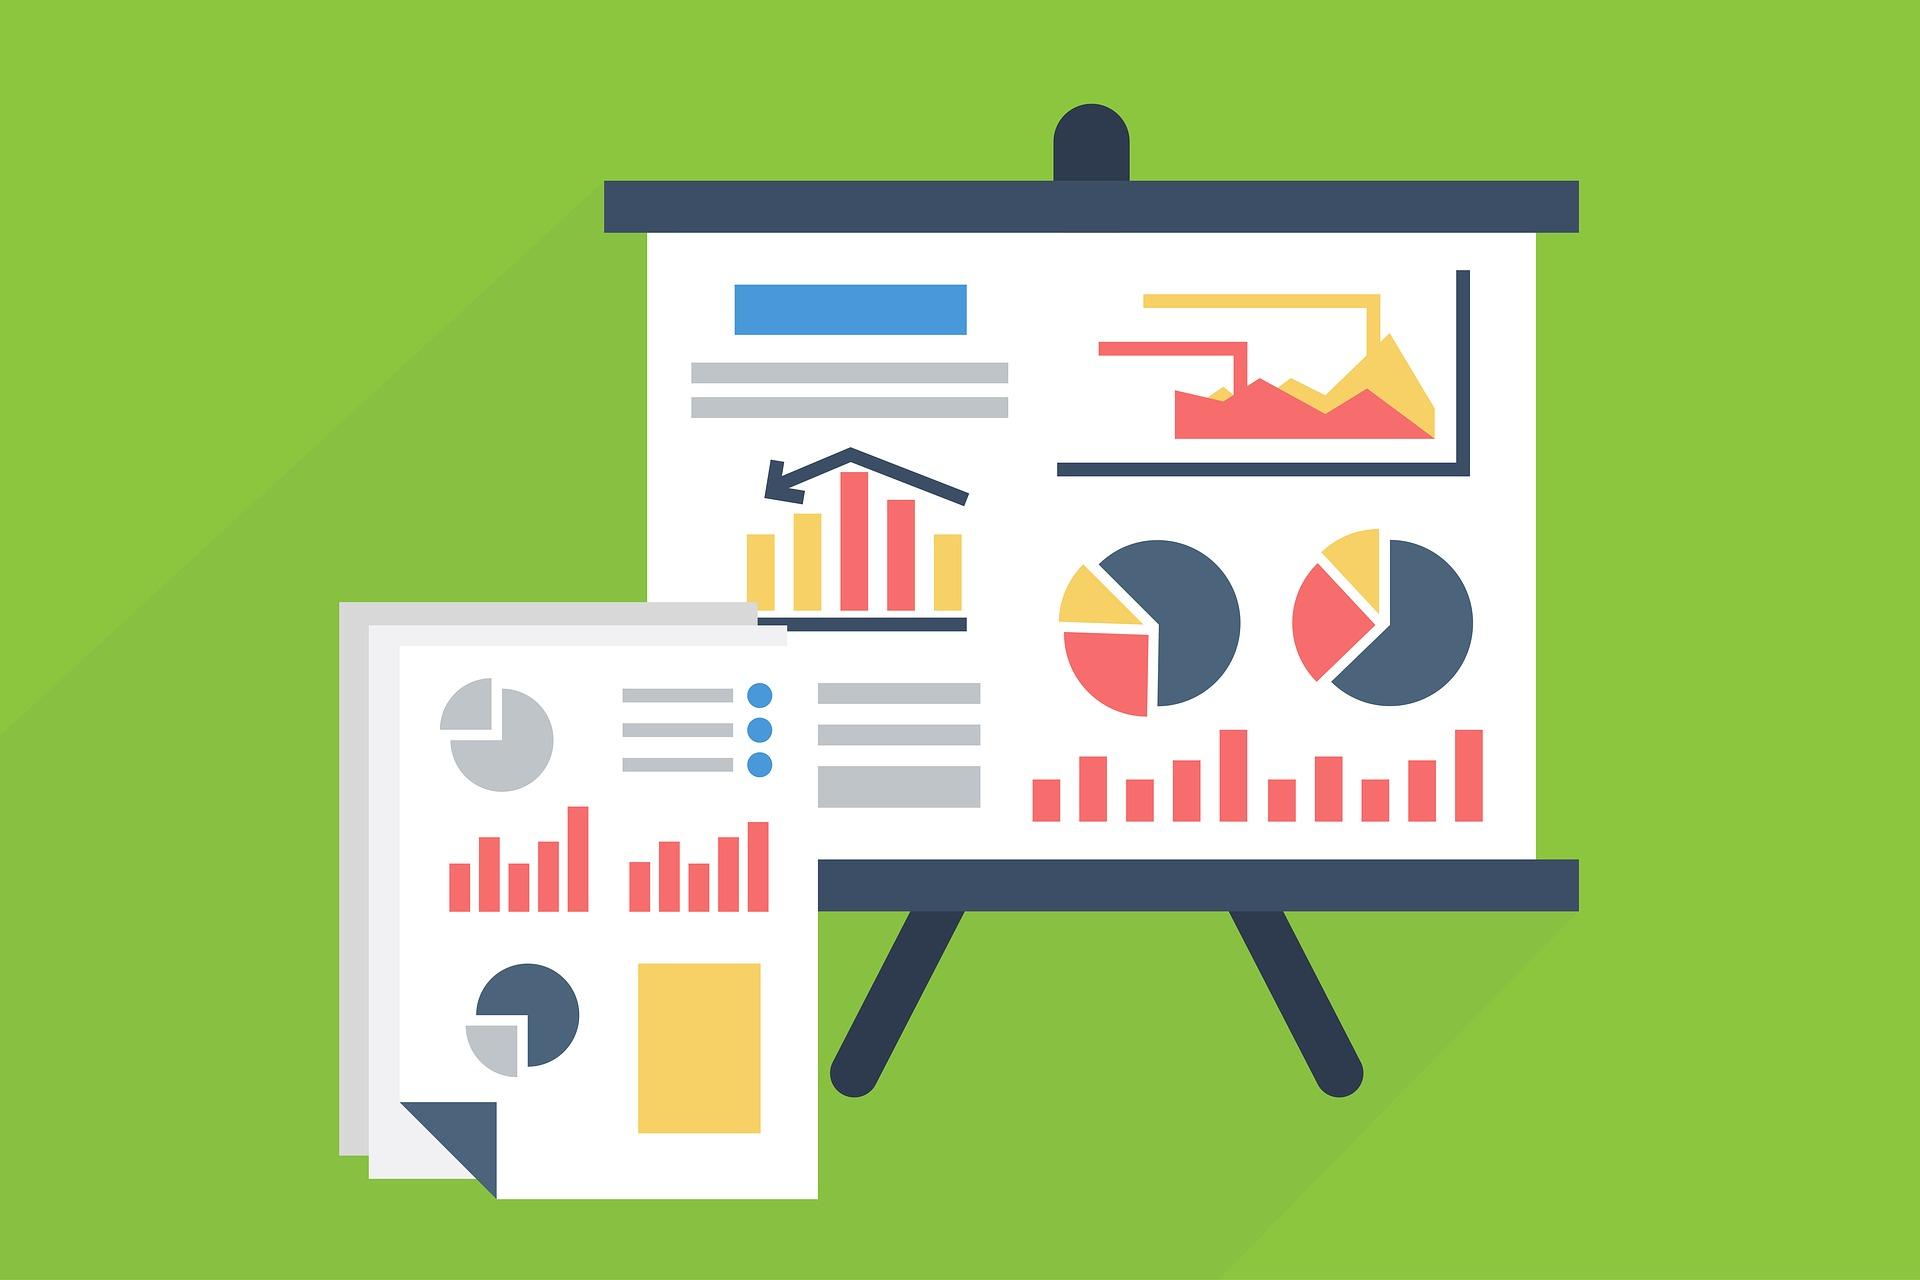 Benefits of Real Time Data Analytics